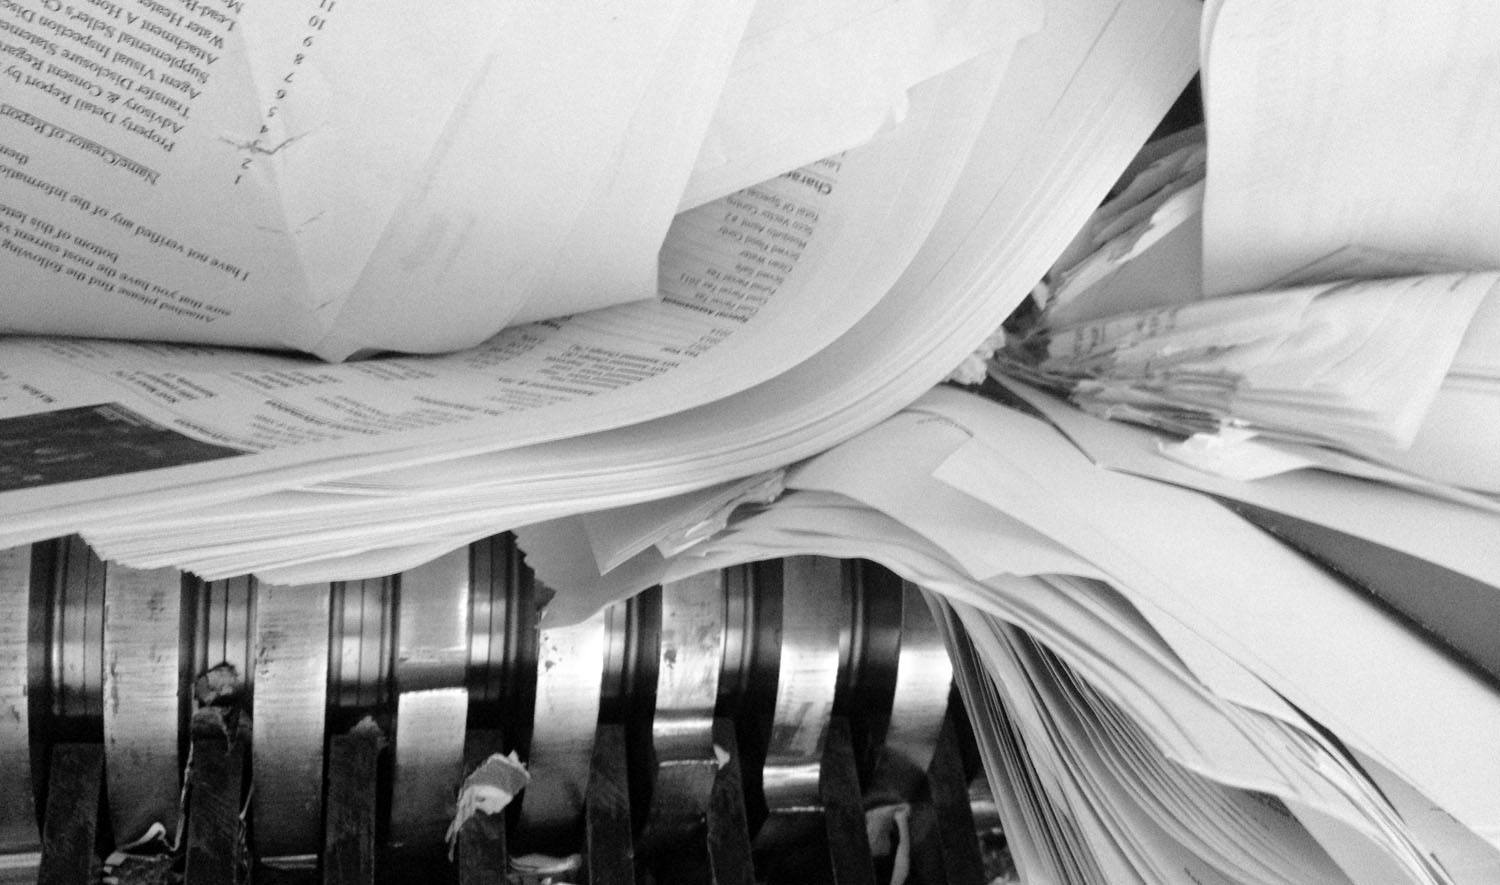 on site shredding service - documents and files being shredded